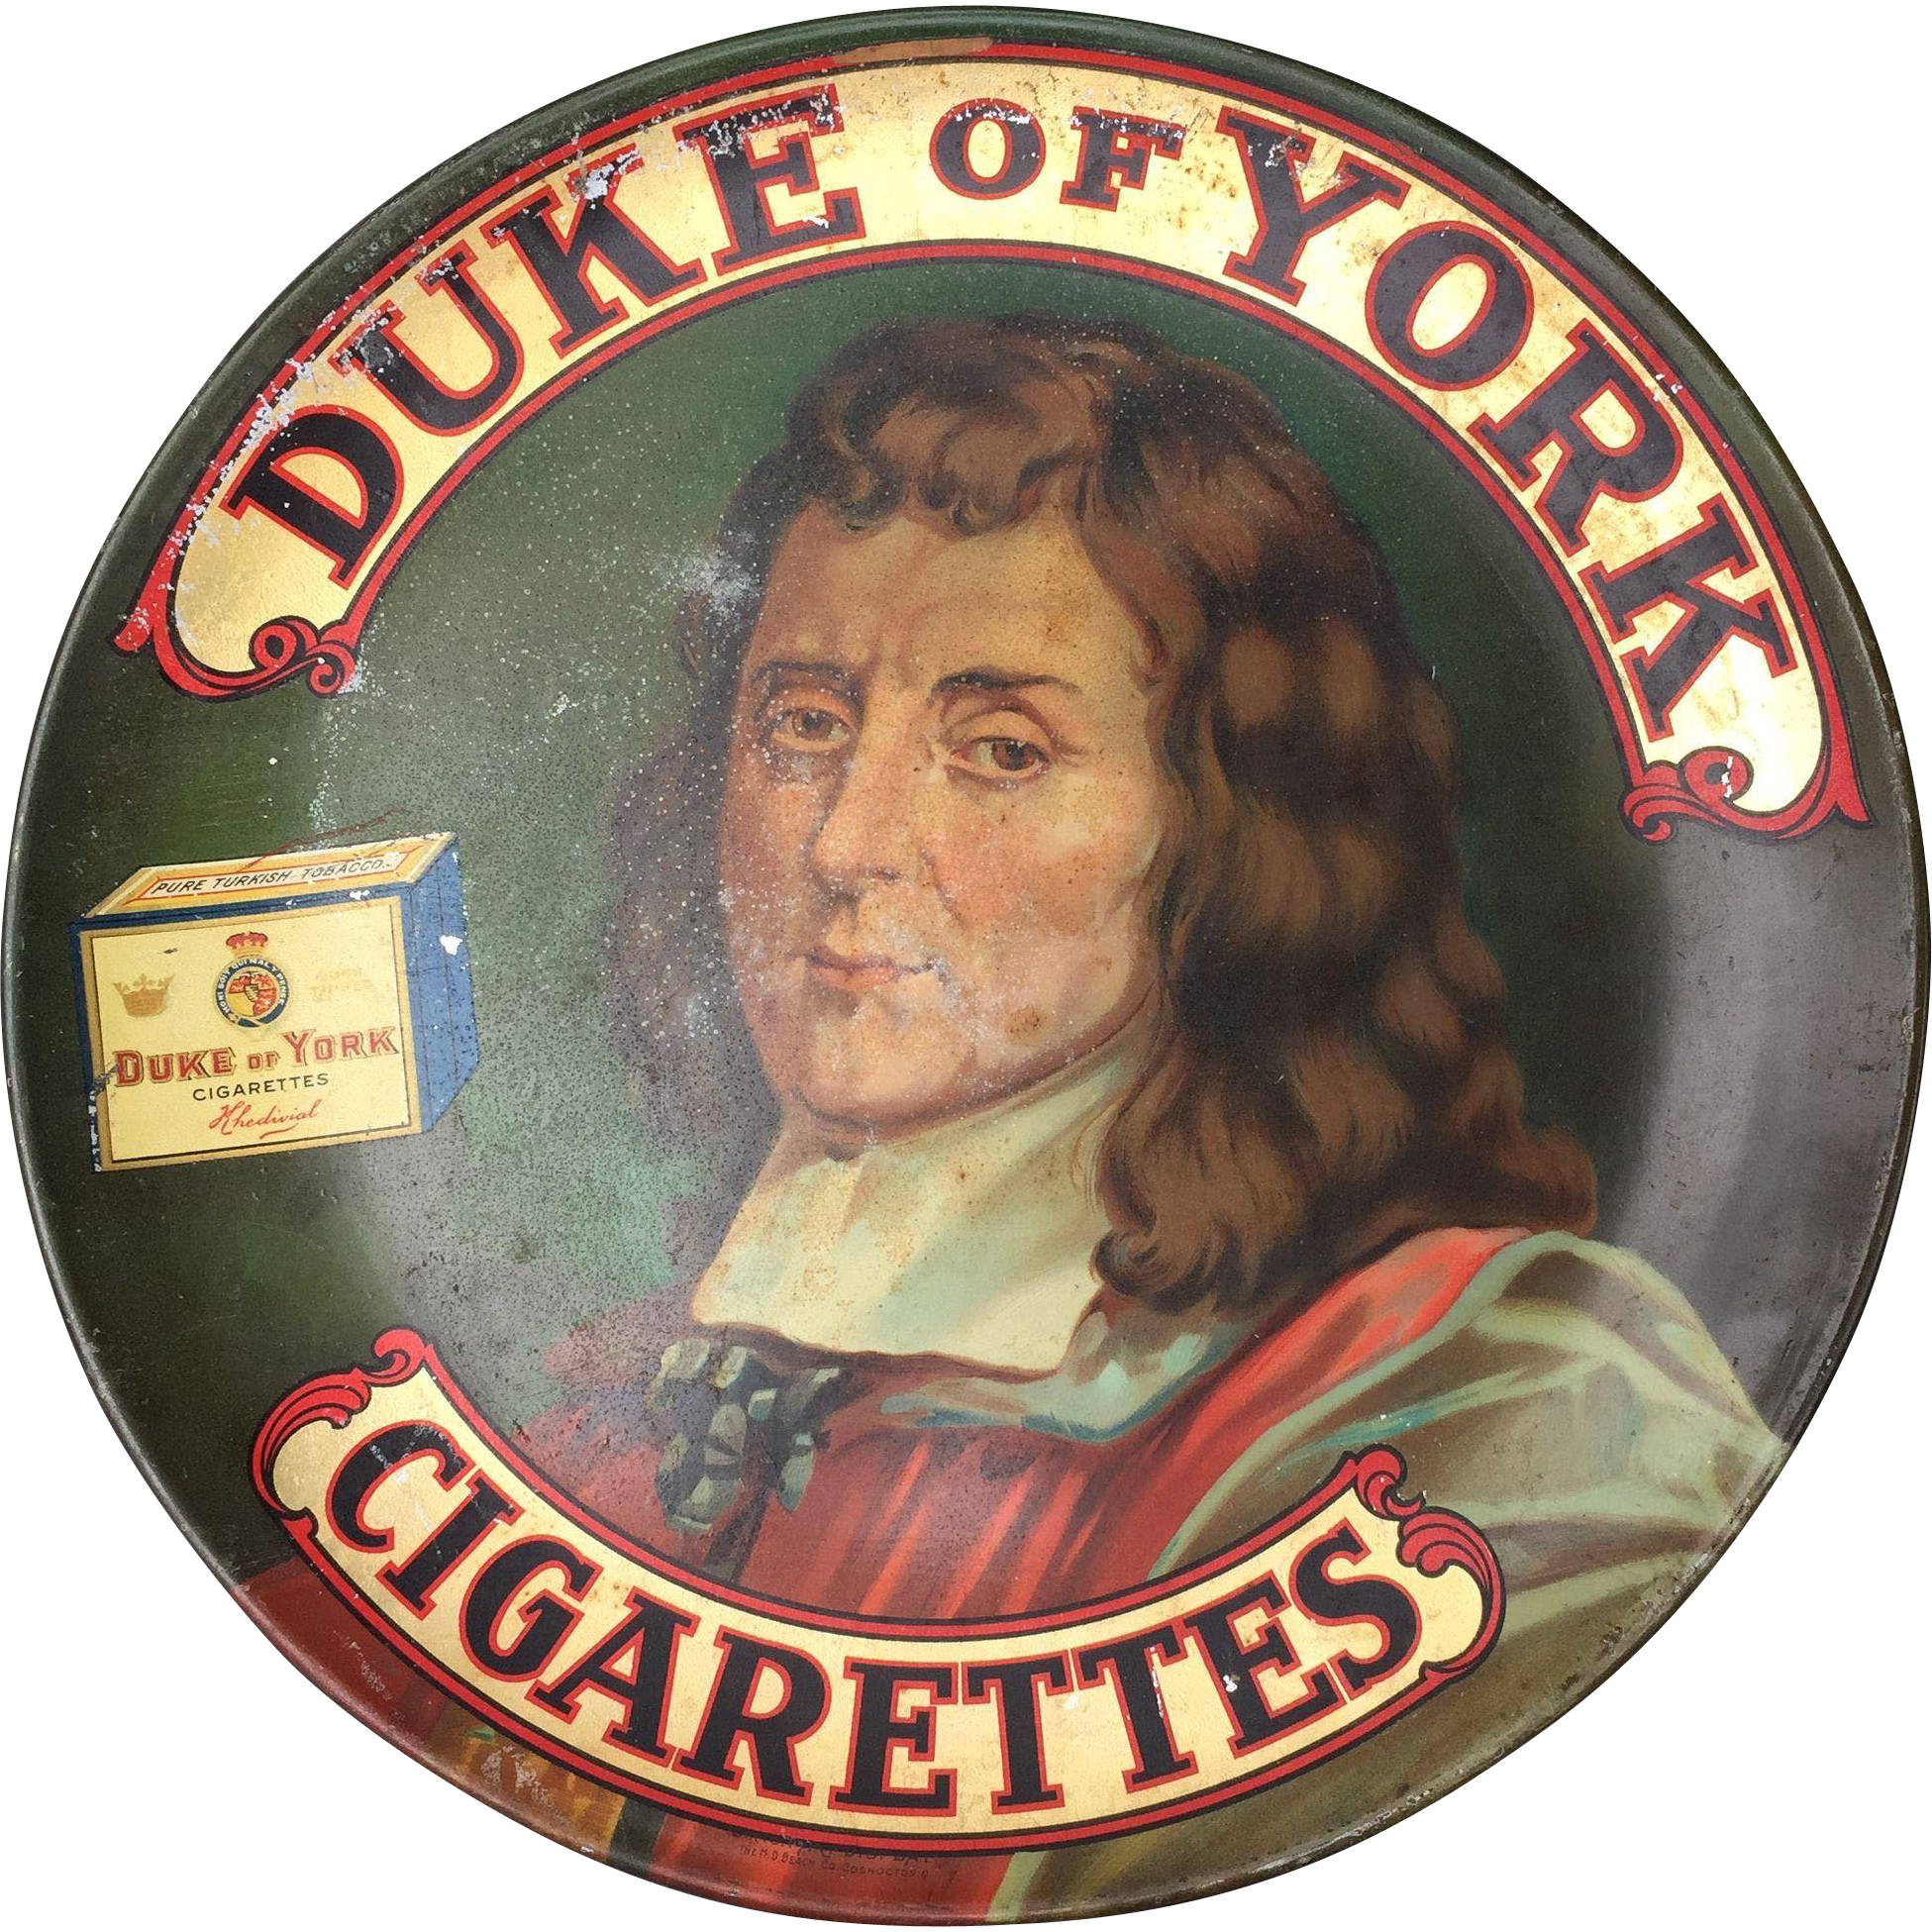 Duke of York Cigarettes Large Full Color Early Advertising Tray